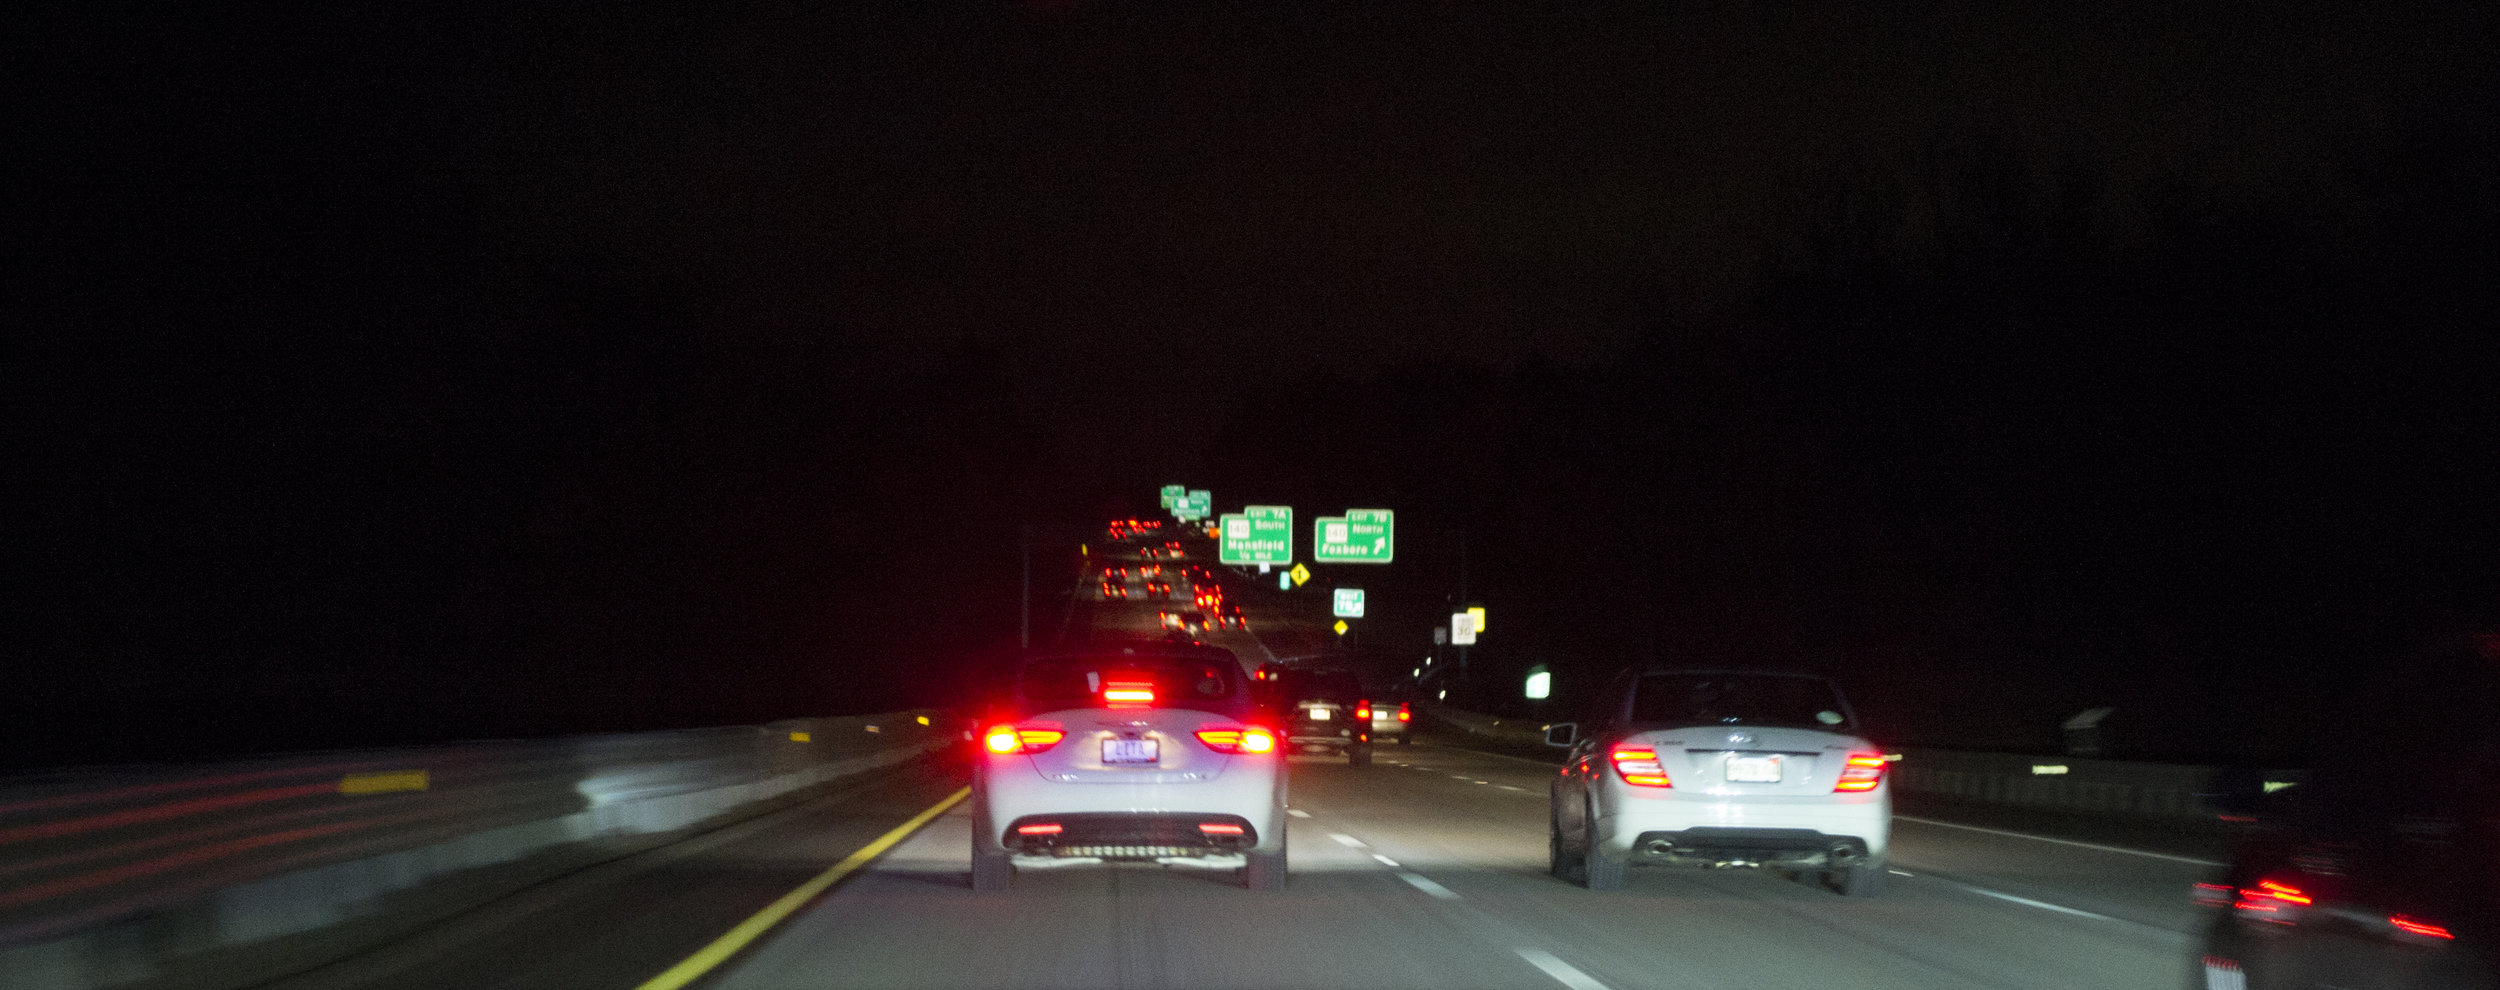 13-Nighttime road.jpg